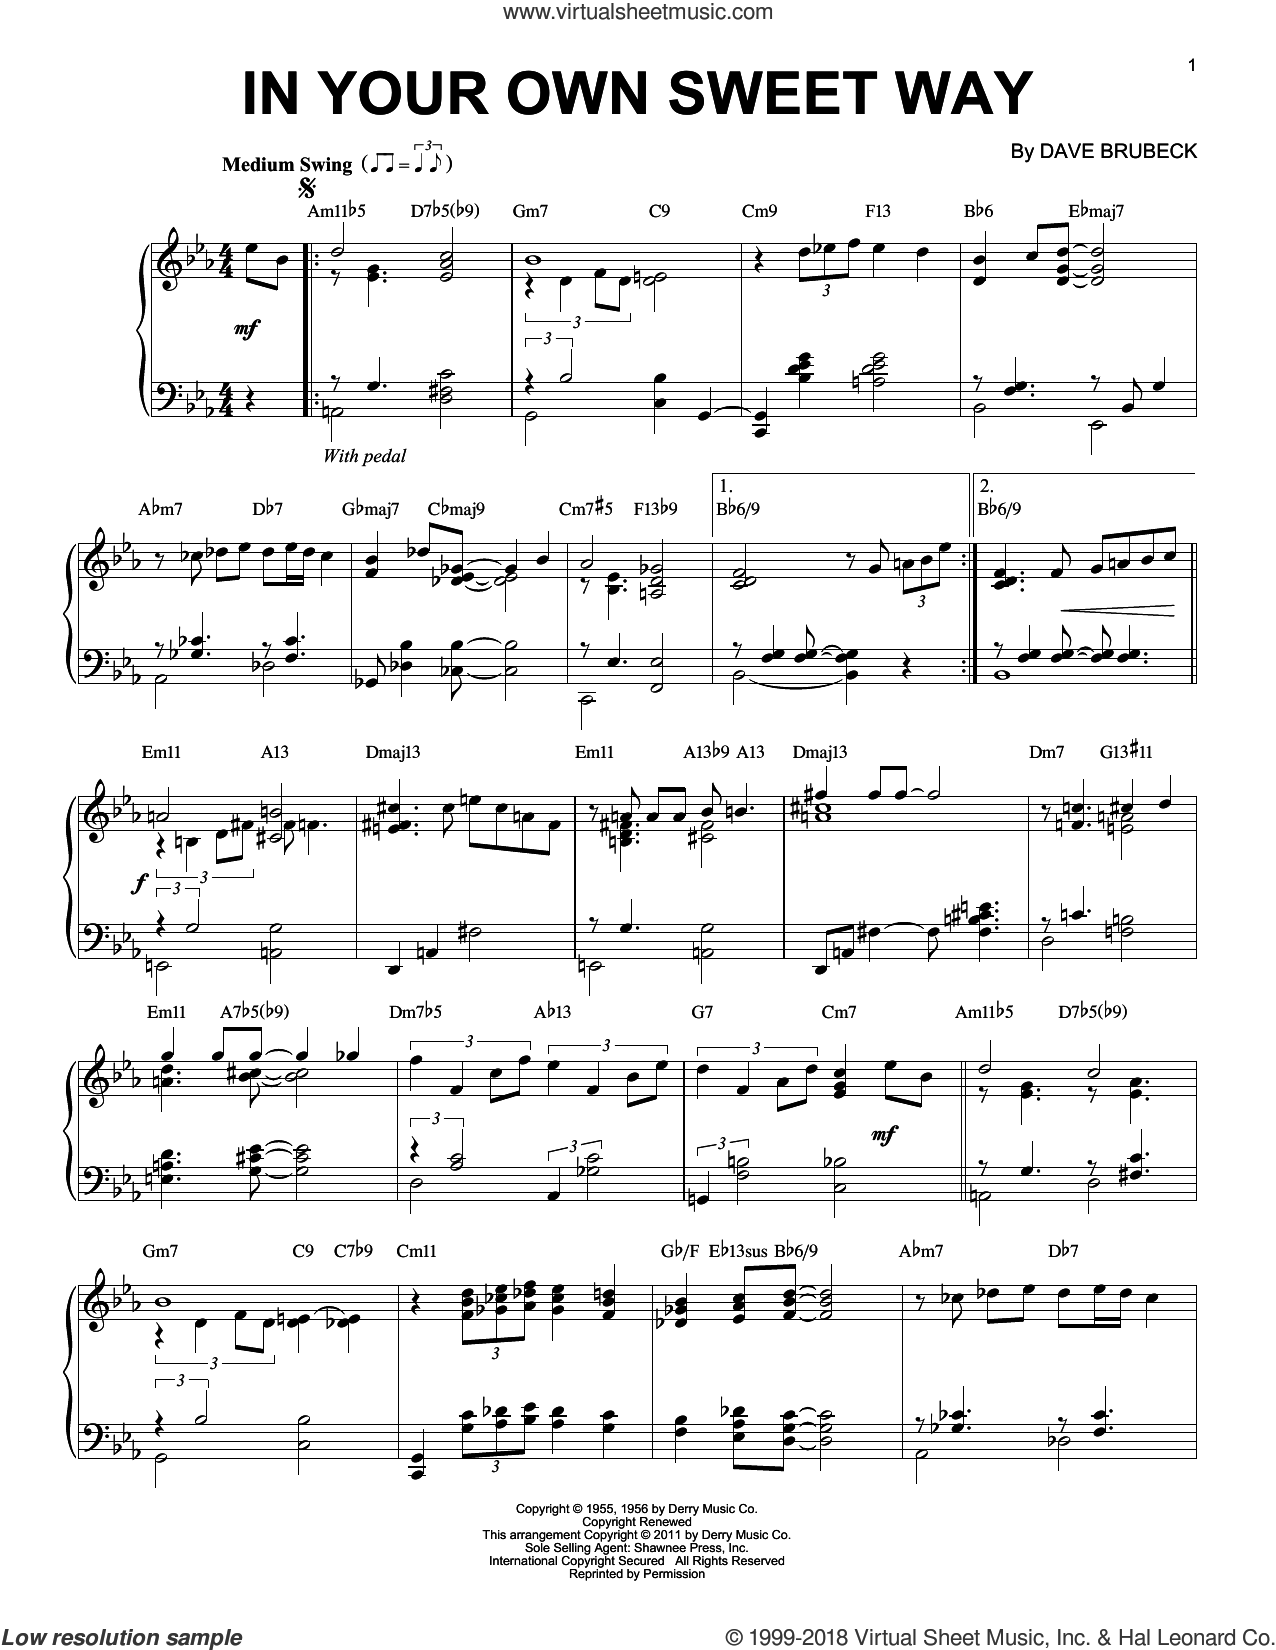 In Your Own Sweet Way sheet music for piano solo by Dave Brubeck. Score Image Preview.